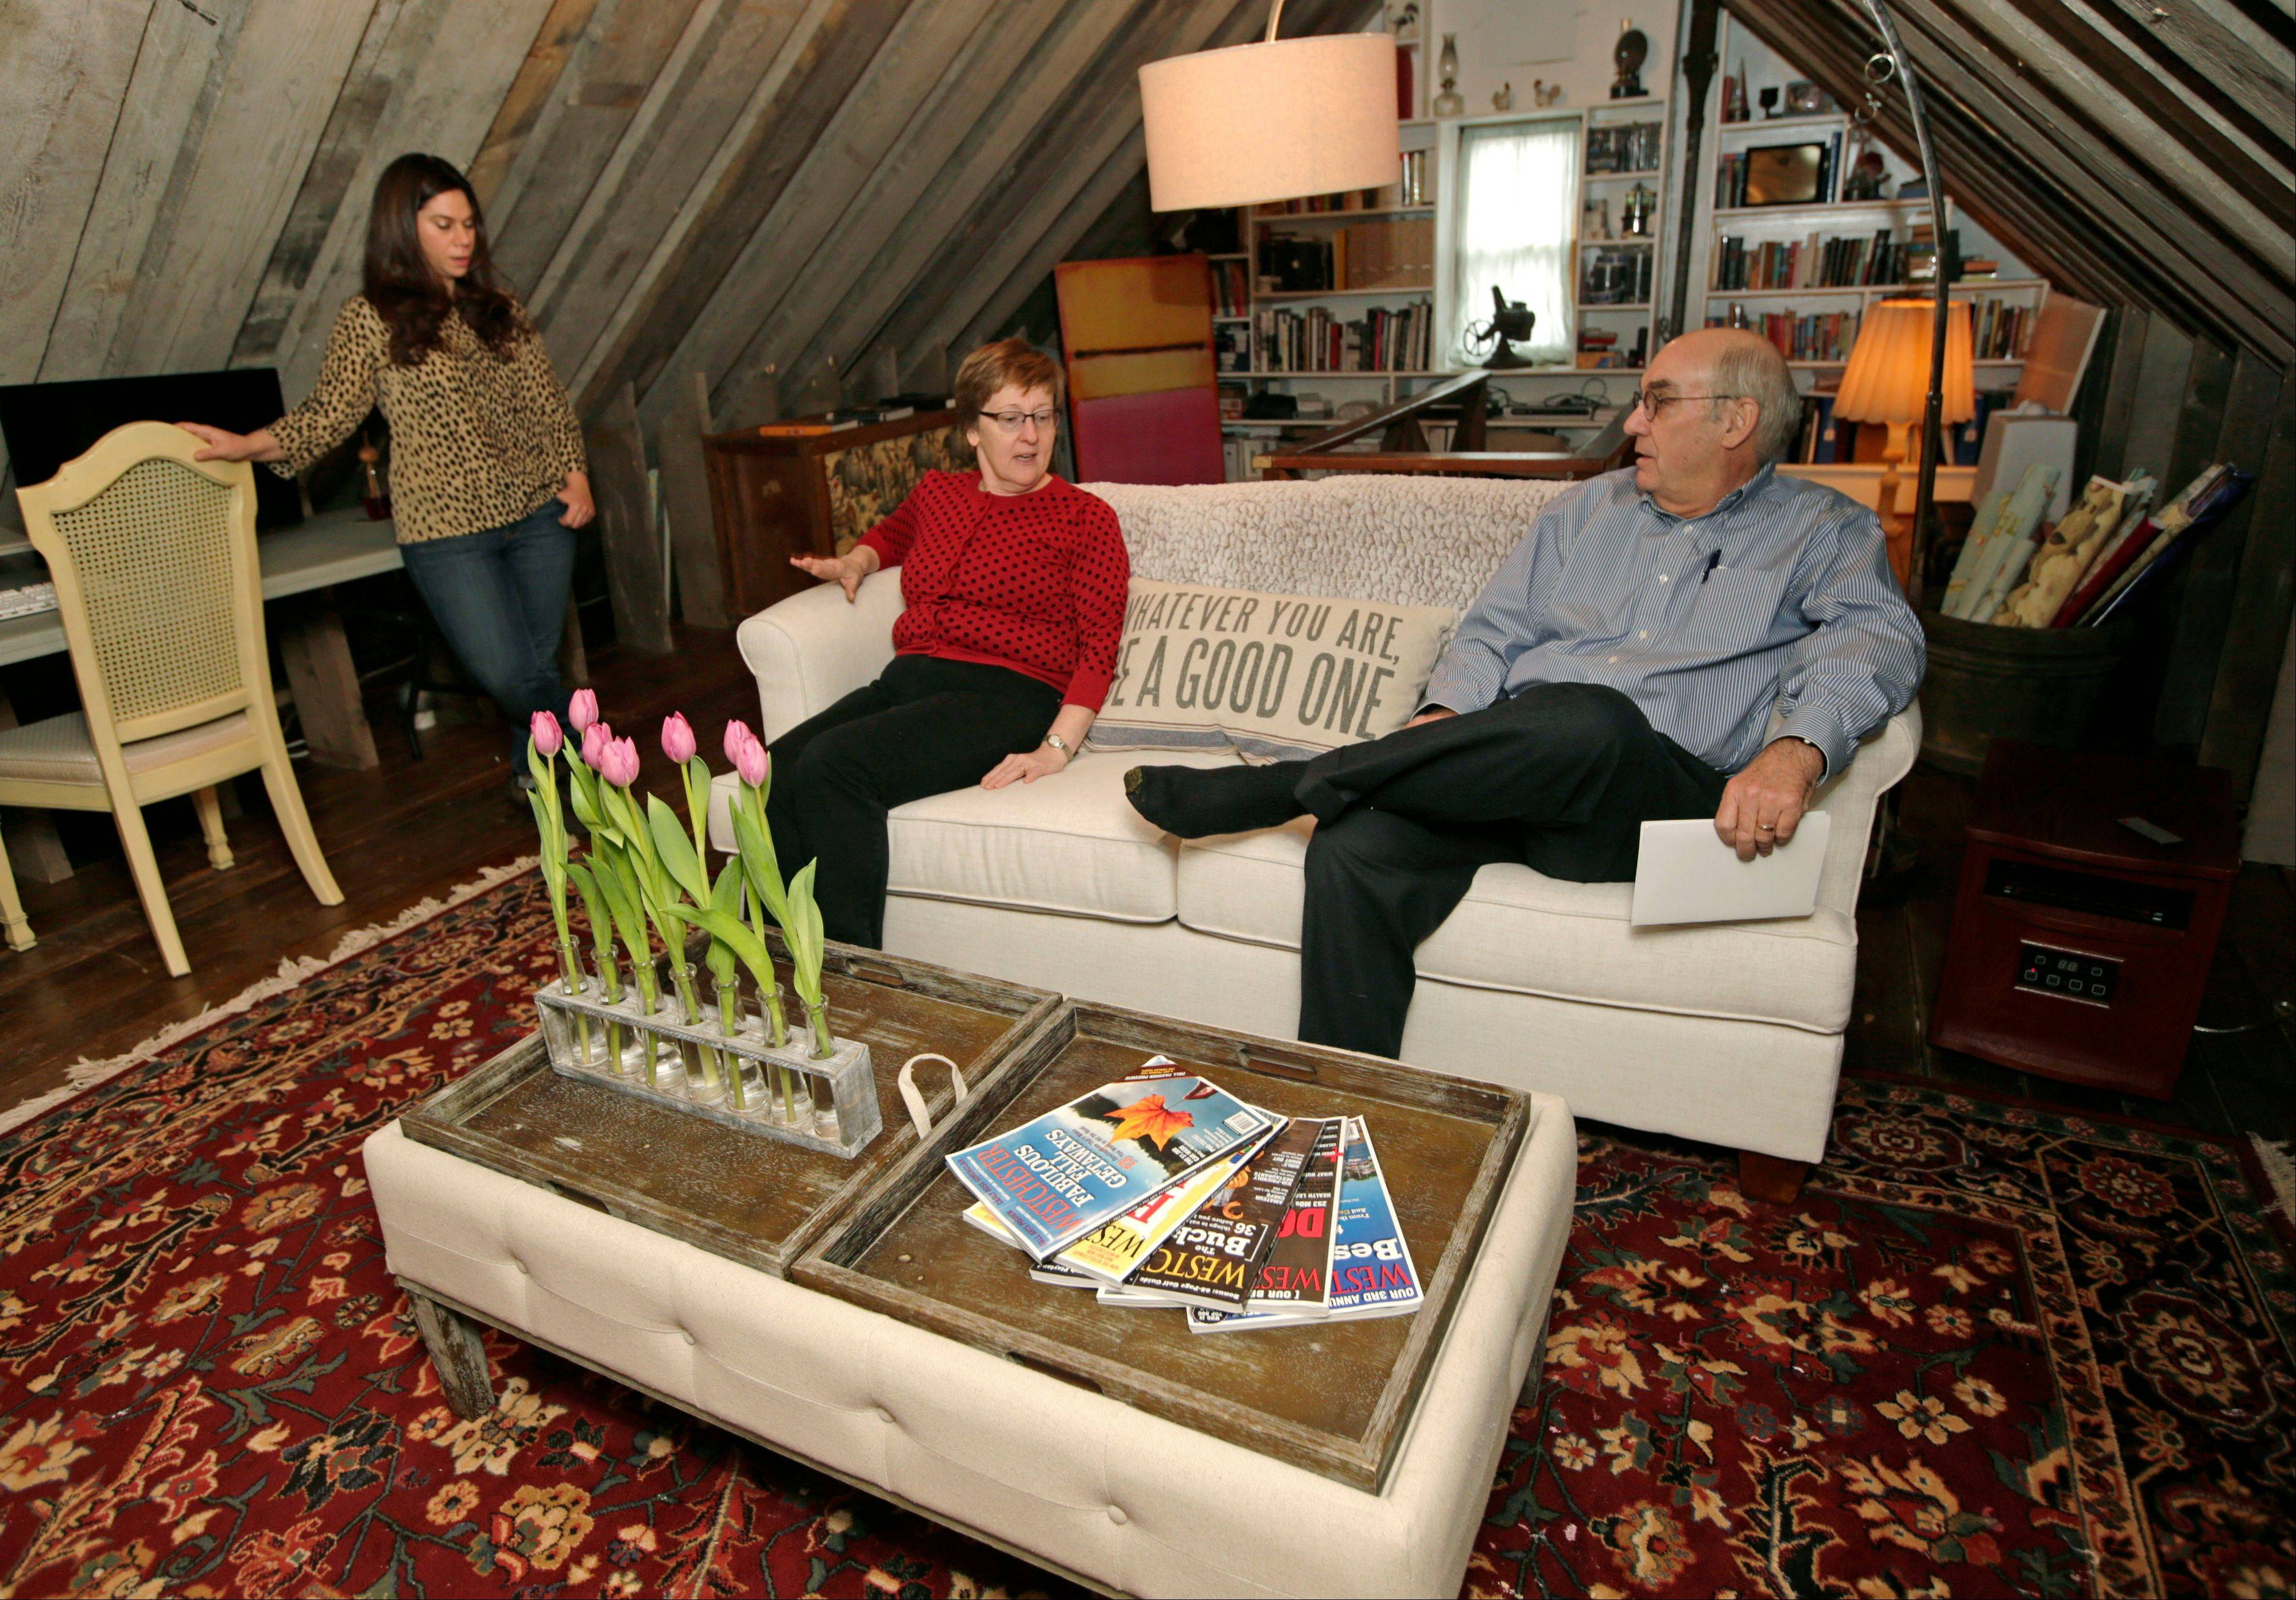 Rebecca Gwynne, left, of Tuckahoe, N.Y., answers a question as Marijane Hamren inspects Gwynne�s Simplicity Sofa with her husband, Jim Hamren, in Tuckahoe, N.Y. While Simplicity�s furniture is sold only over the Internet, some customers want to see and try out the sofas and chairs. Owner Jeff Frank contacts people who have already bought his furniture, and asks them if they�ll let a prospective customer stop by to take a look.